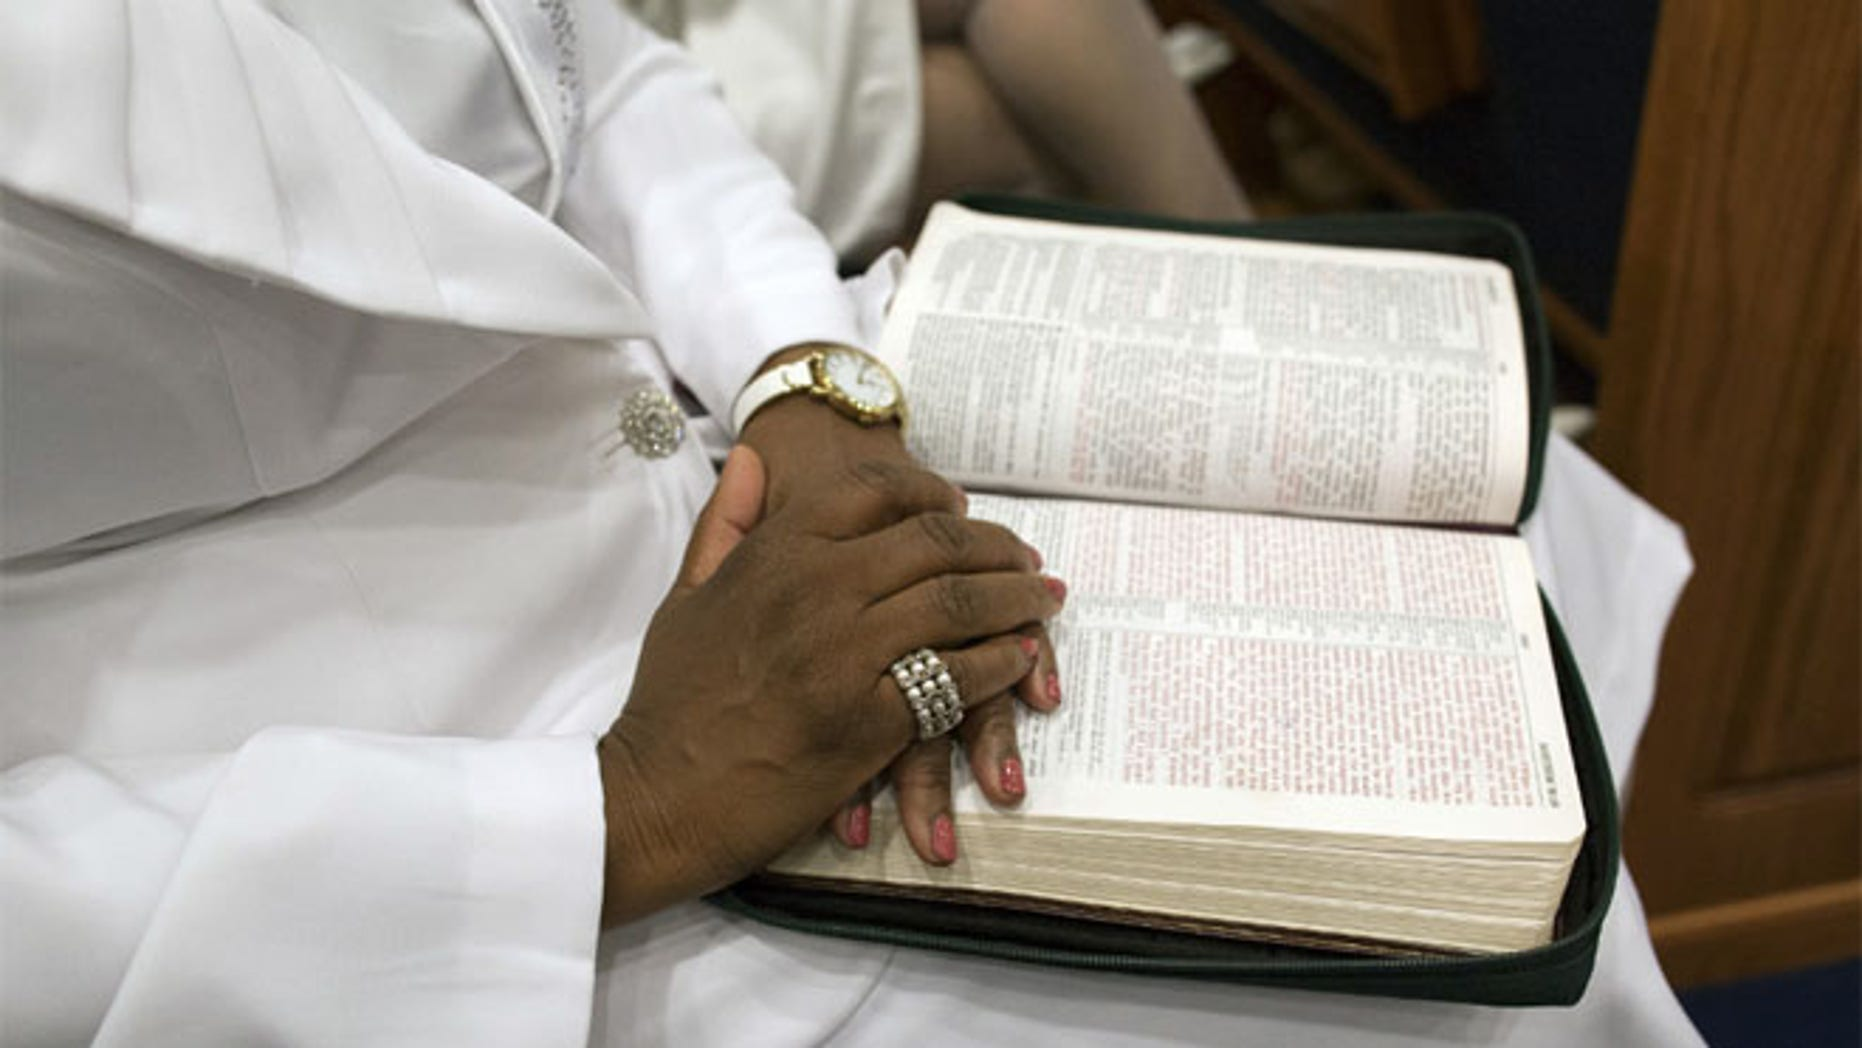 A West Virginia mom is suing the public school system in her district over a bible study class.